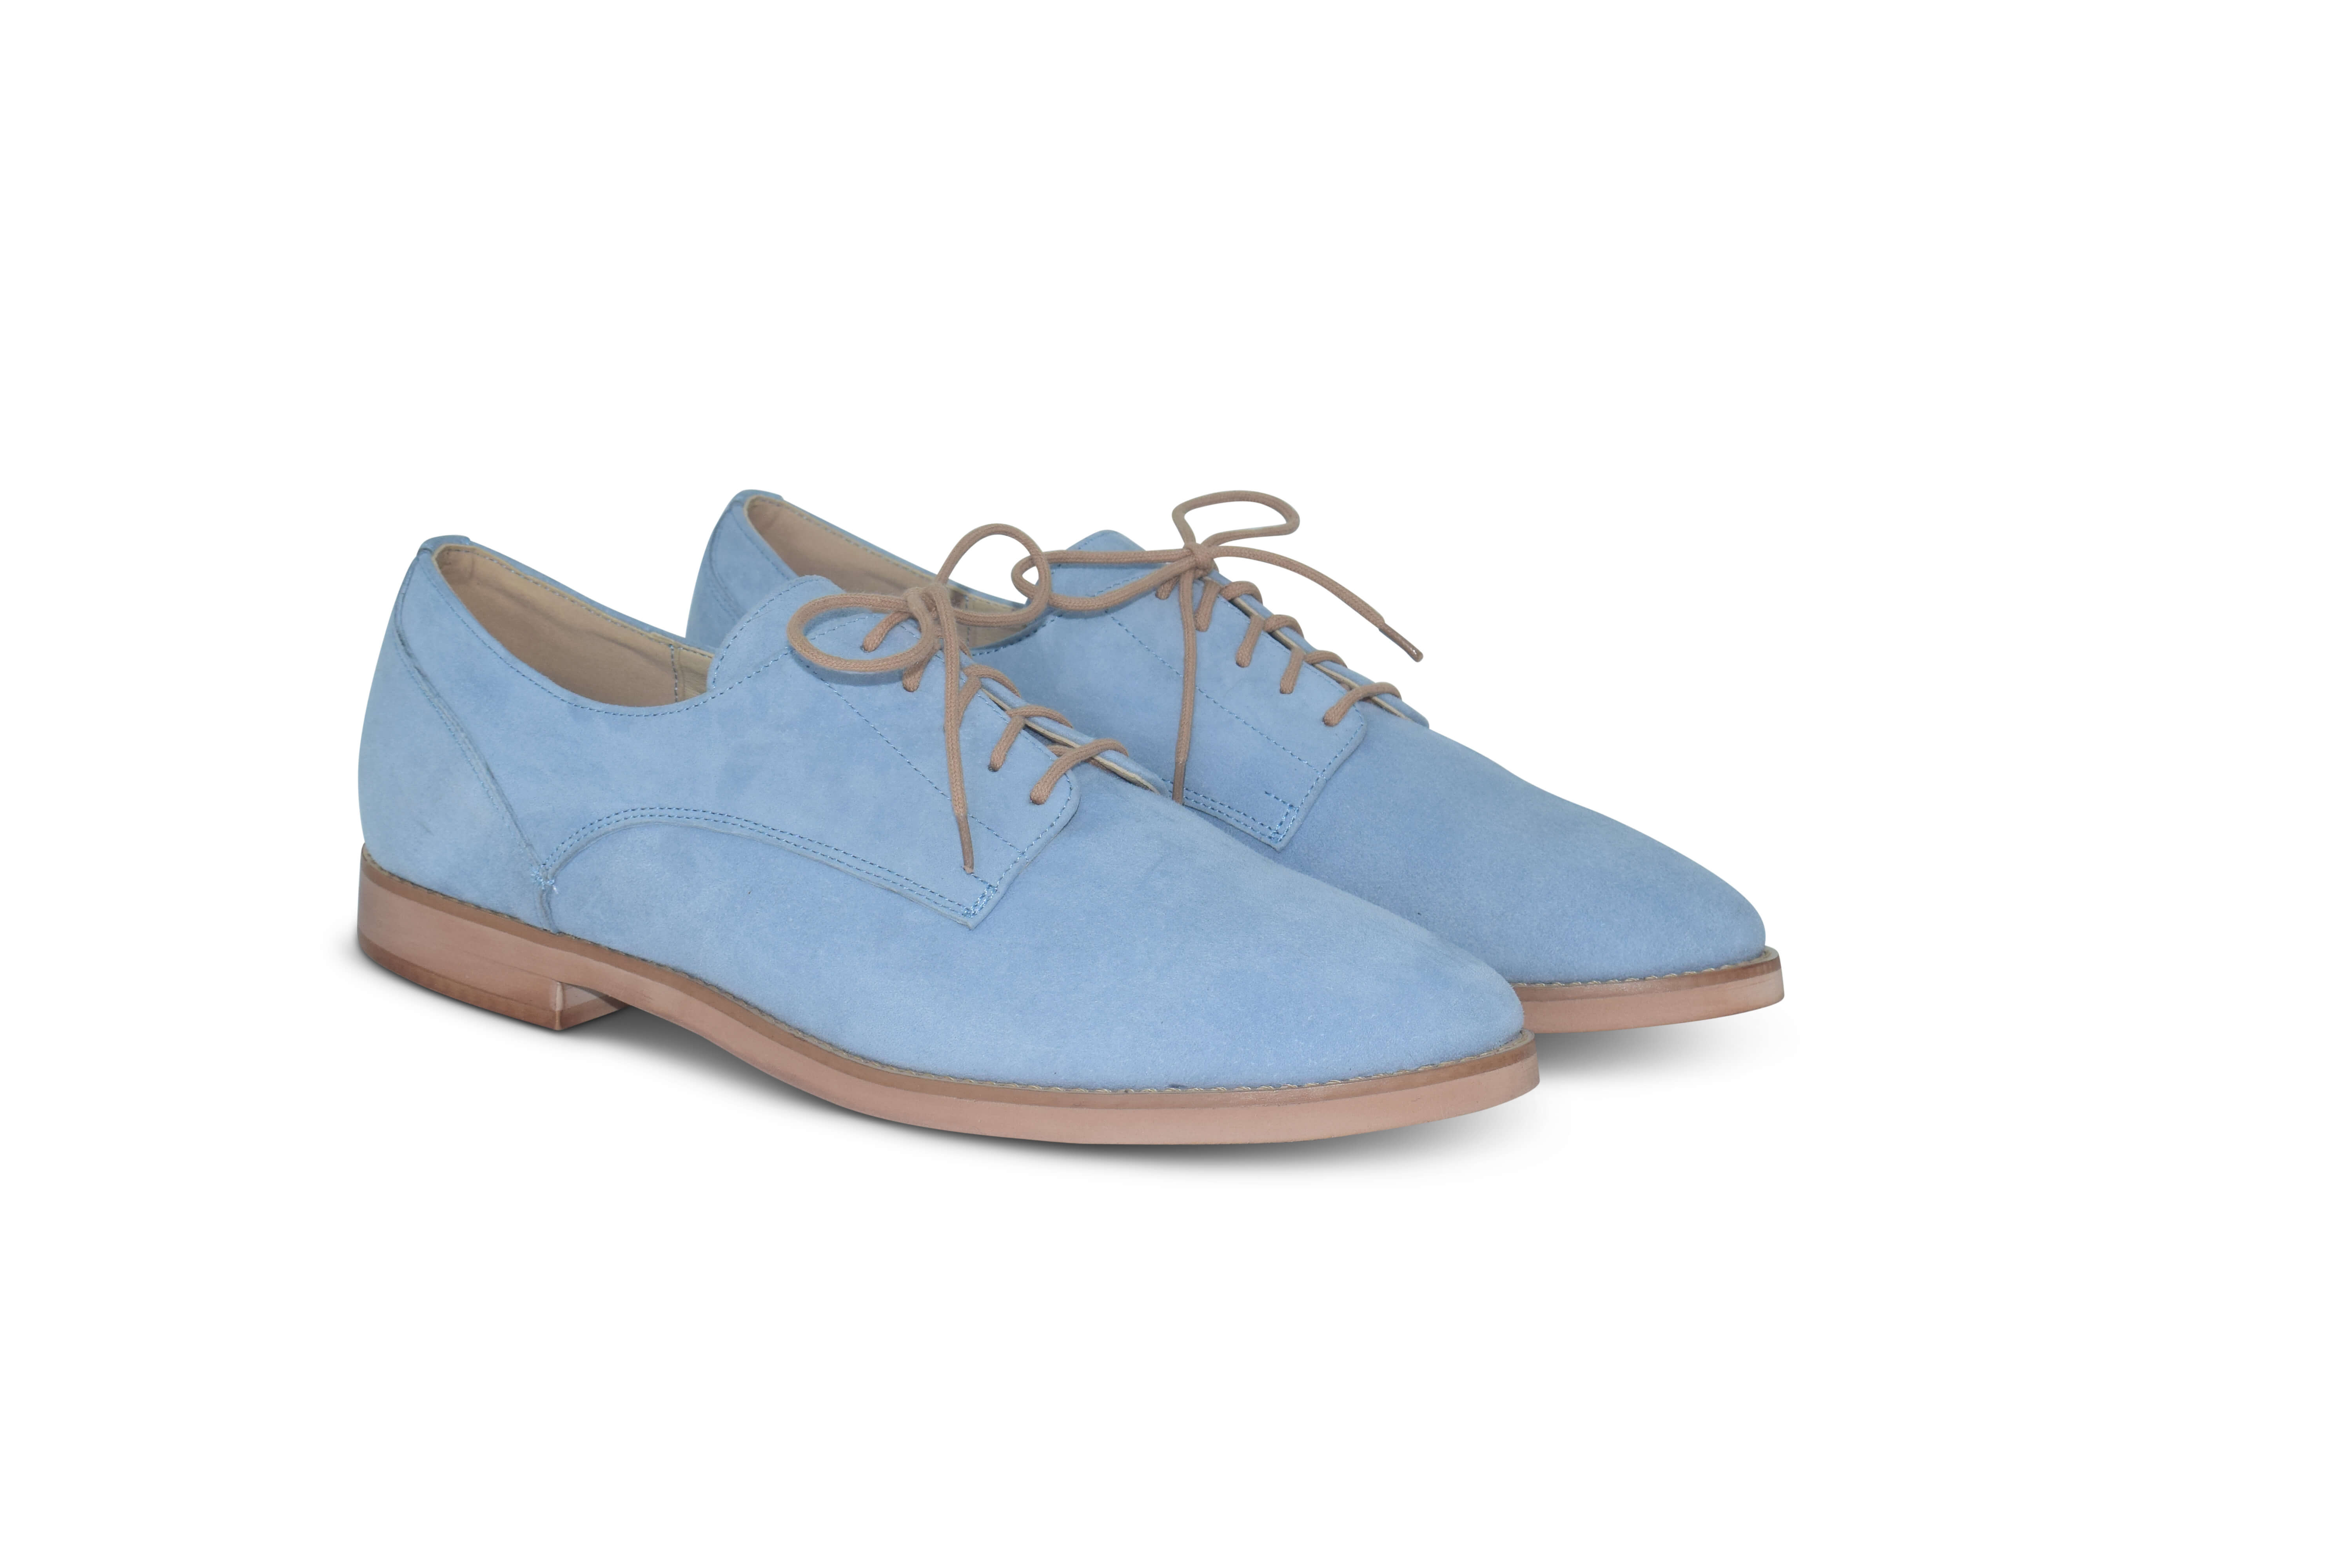 Harriett leather pointed toe Oxfords - light blue